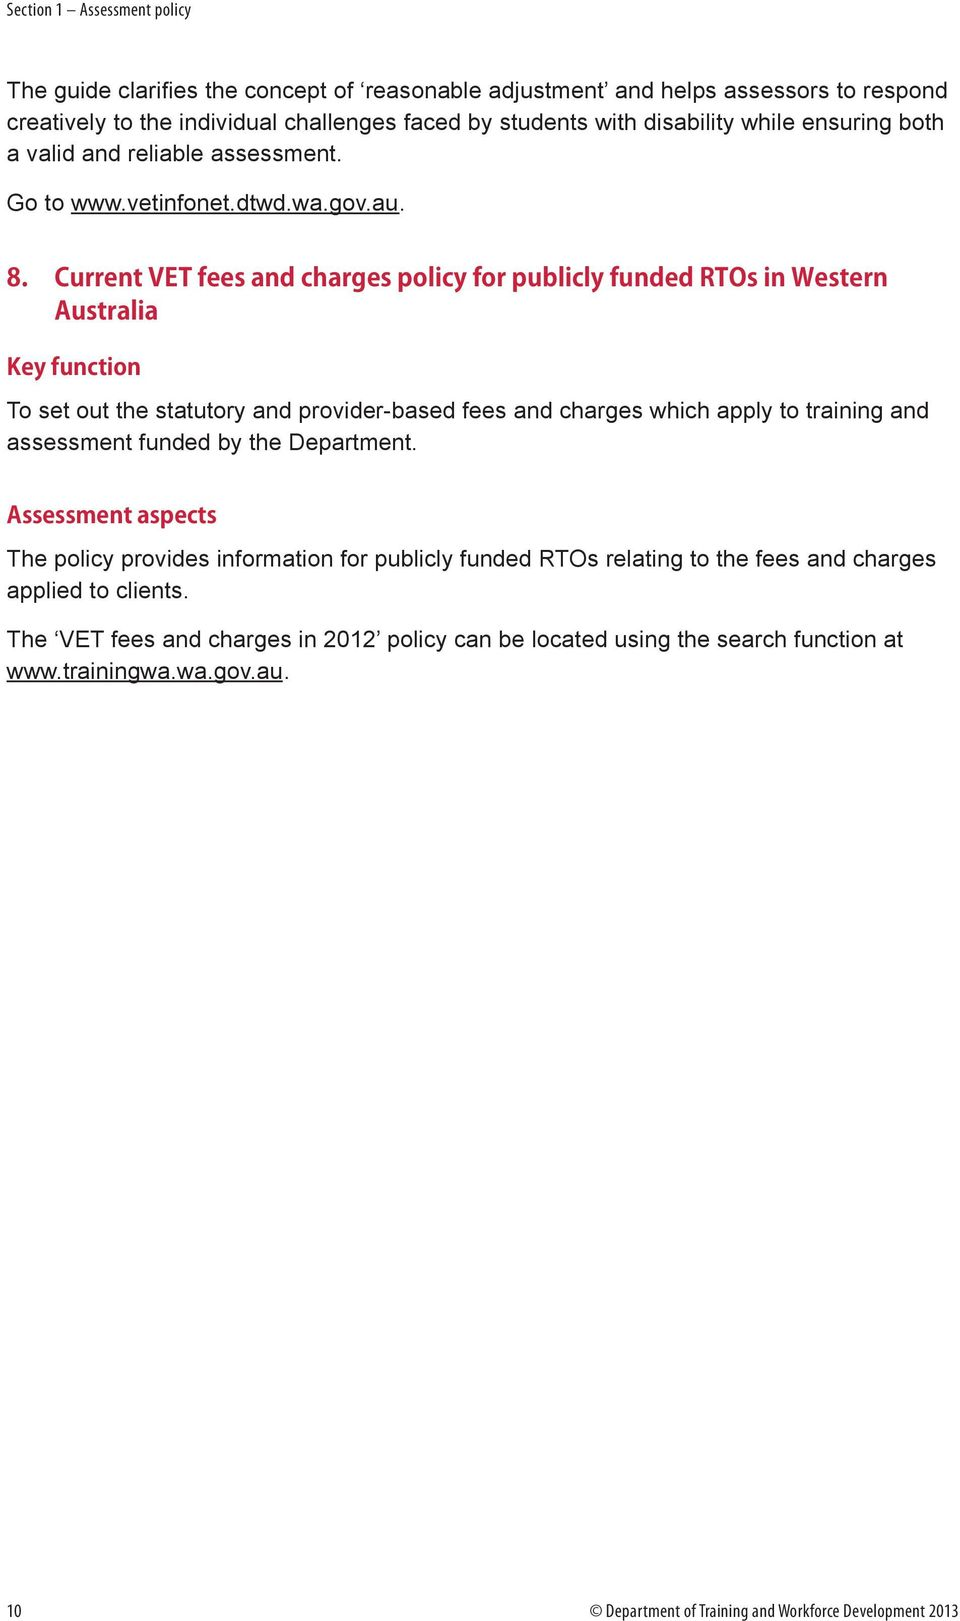 Current VET fees and charges policy for publicly funded RTOs in Western Australia Key function To set out the statutory and provider-based fees and charges which apply to training and assessment